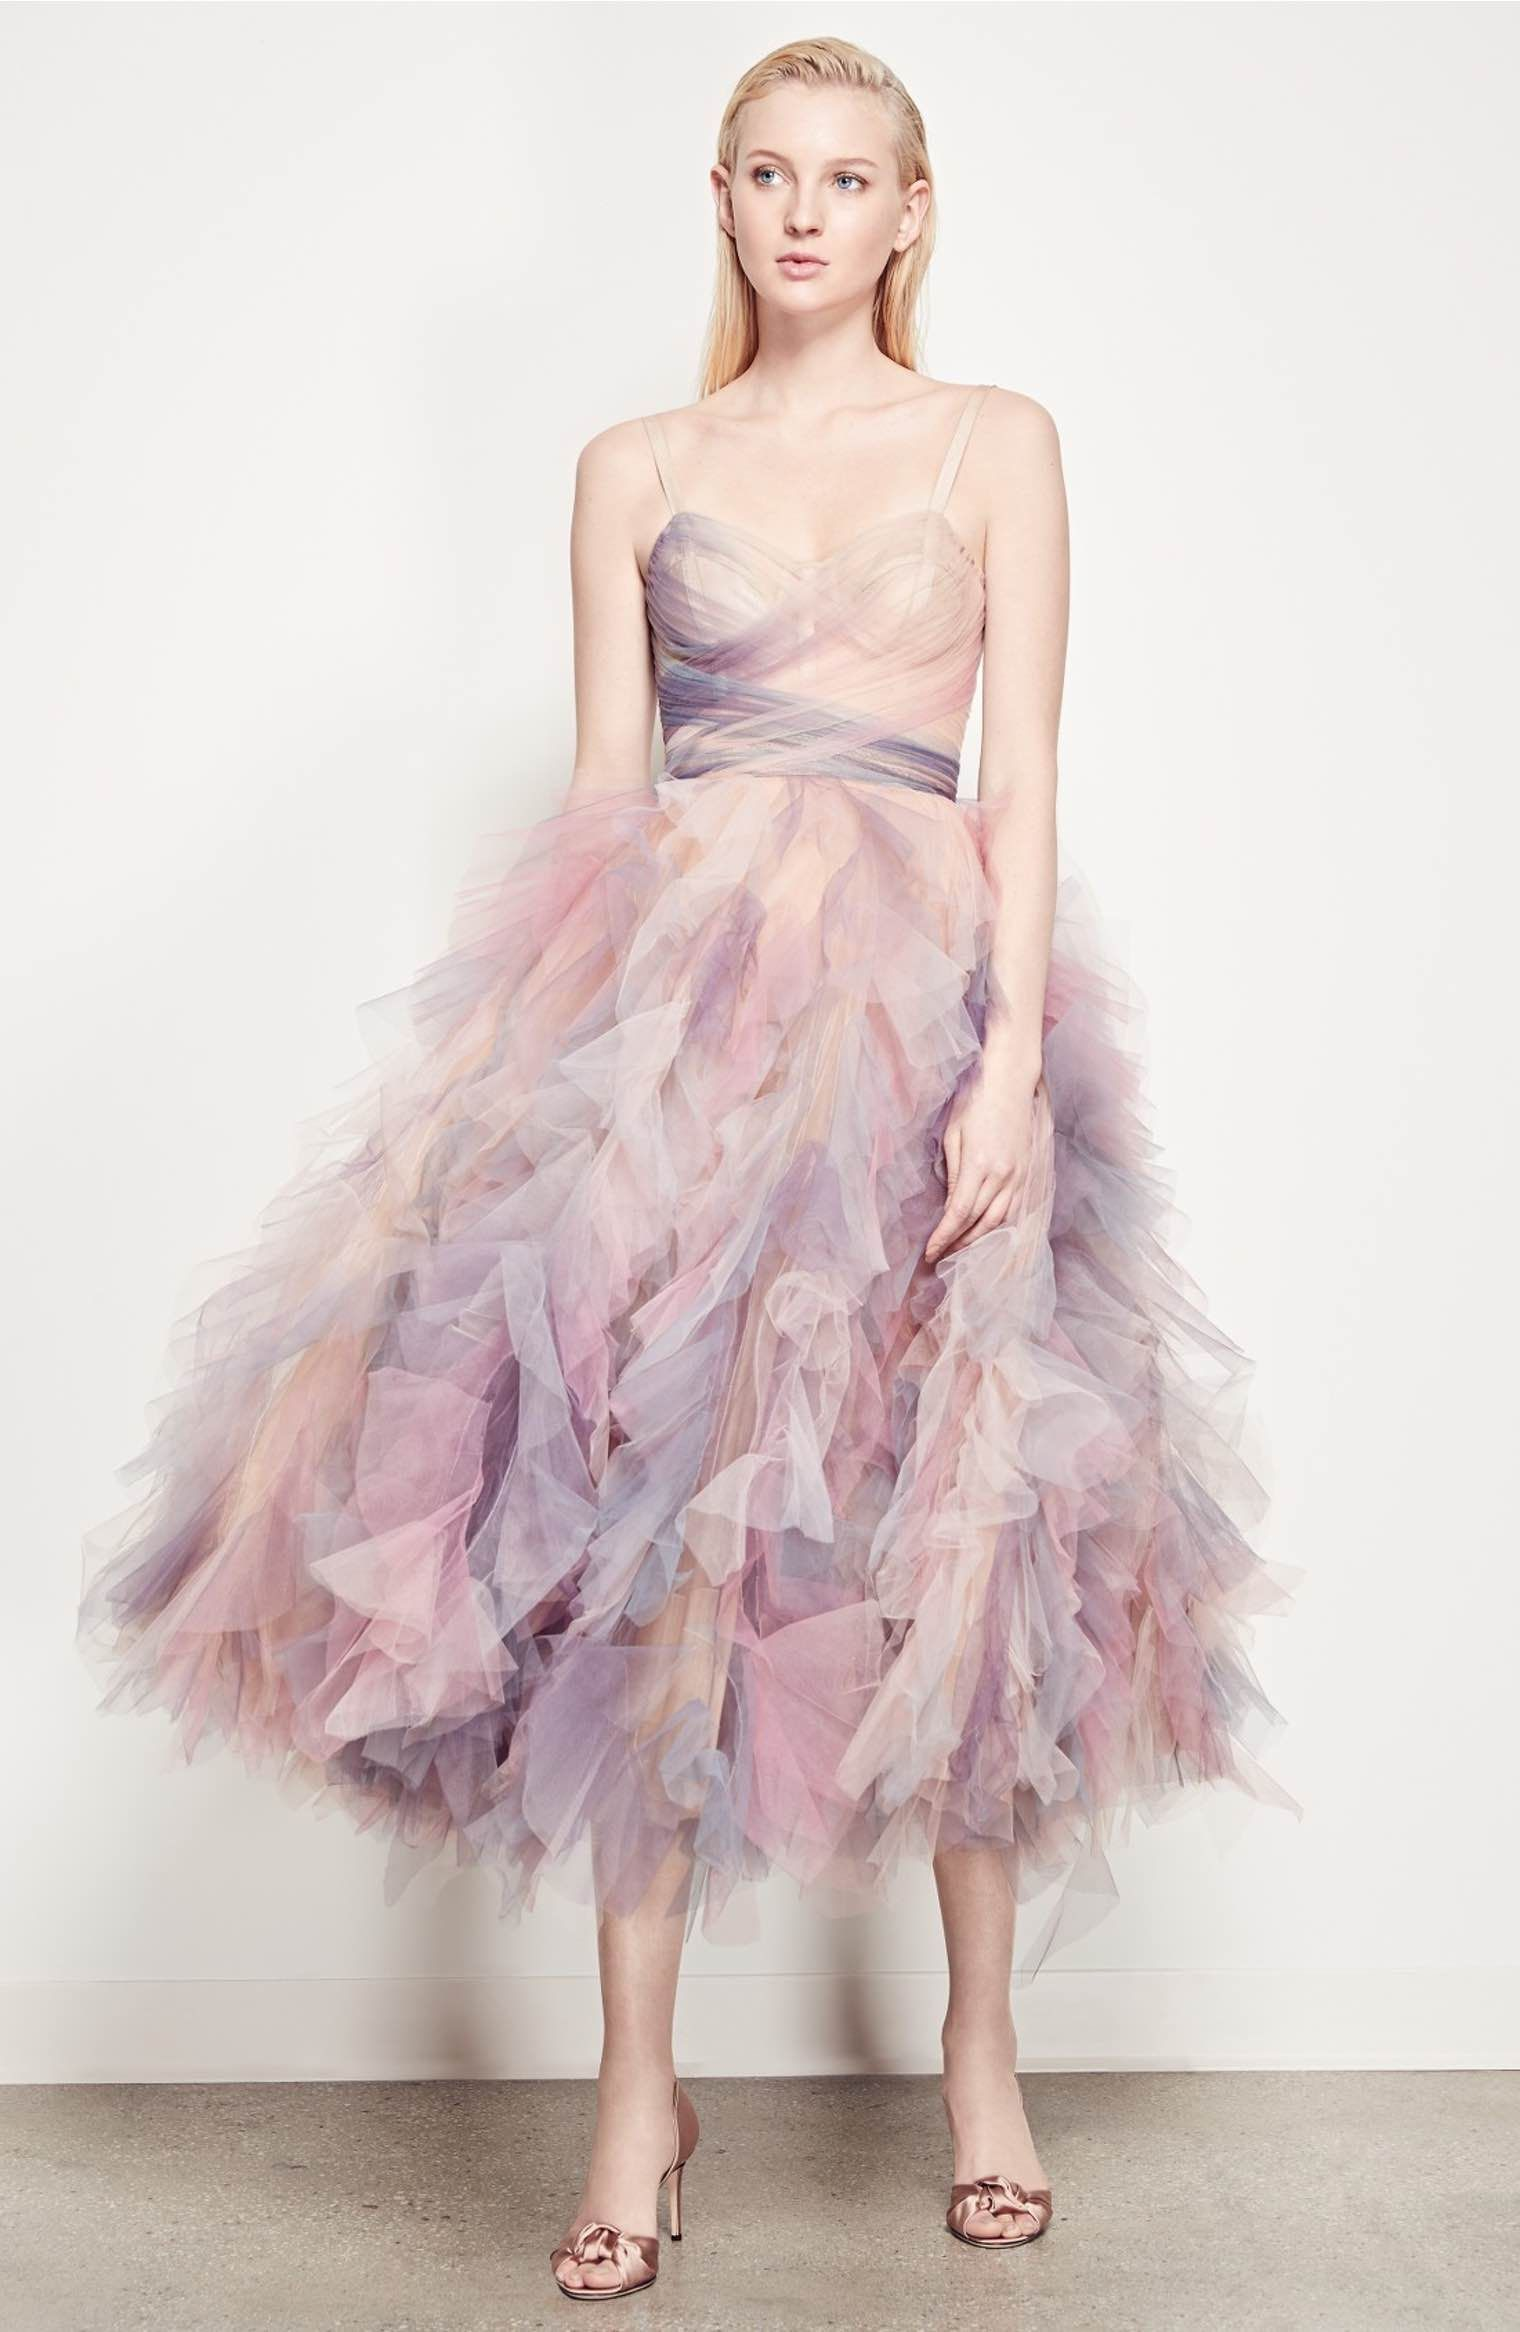 a1dcc9f9 Marchesa Watercolor Tulle Dress- If I were a fairy - Corsets are alive and  well on Pinterest. Compare prices for this @ Wrhel.com before you commit to  buy.